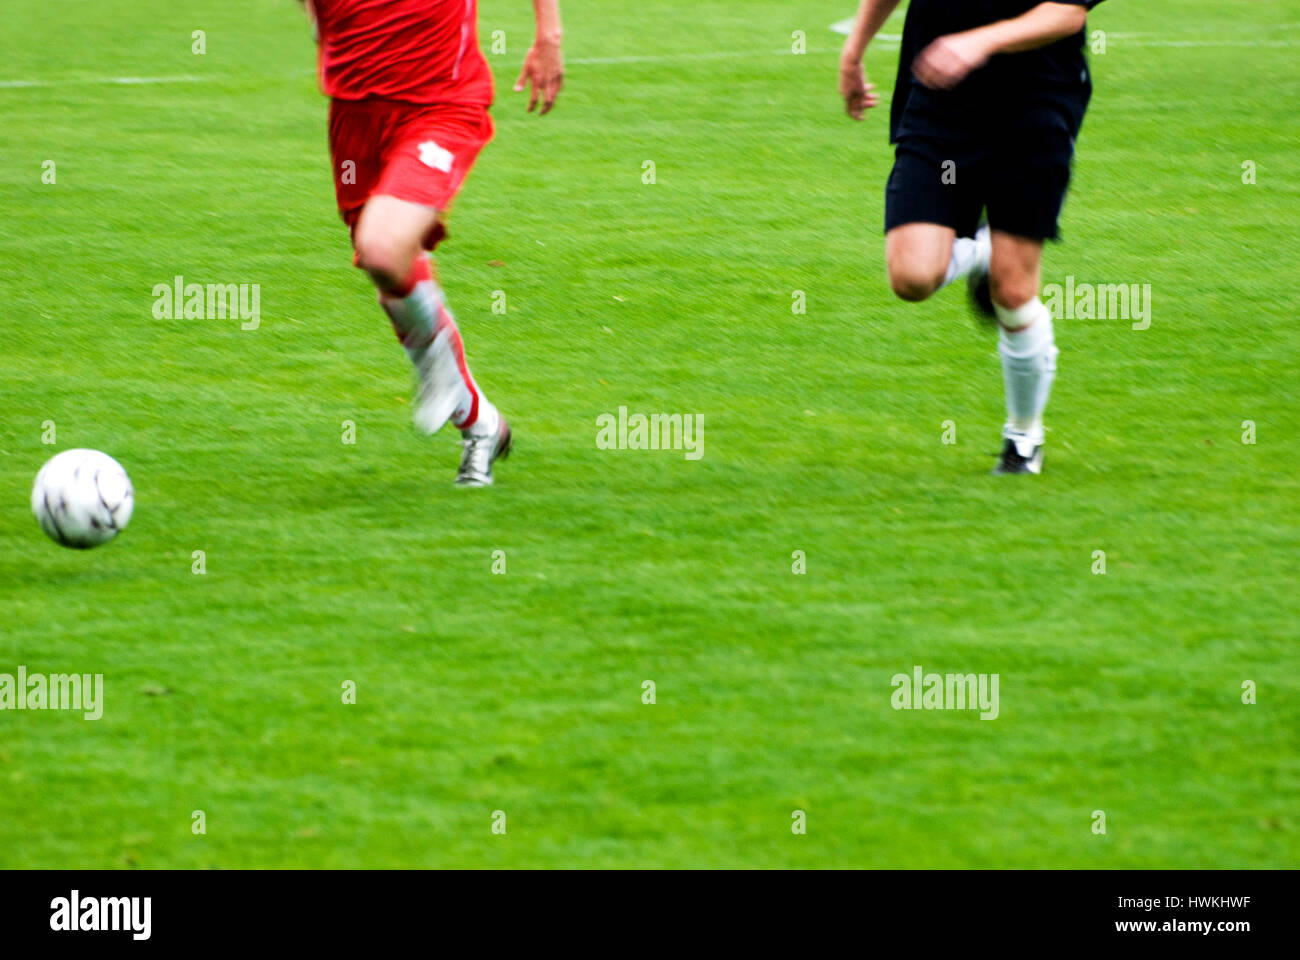 soccer or football players in action during a game - Stock Image